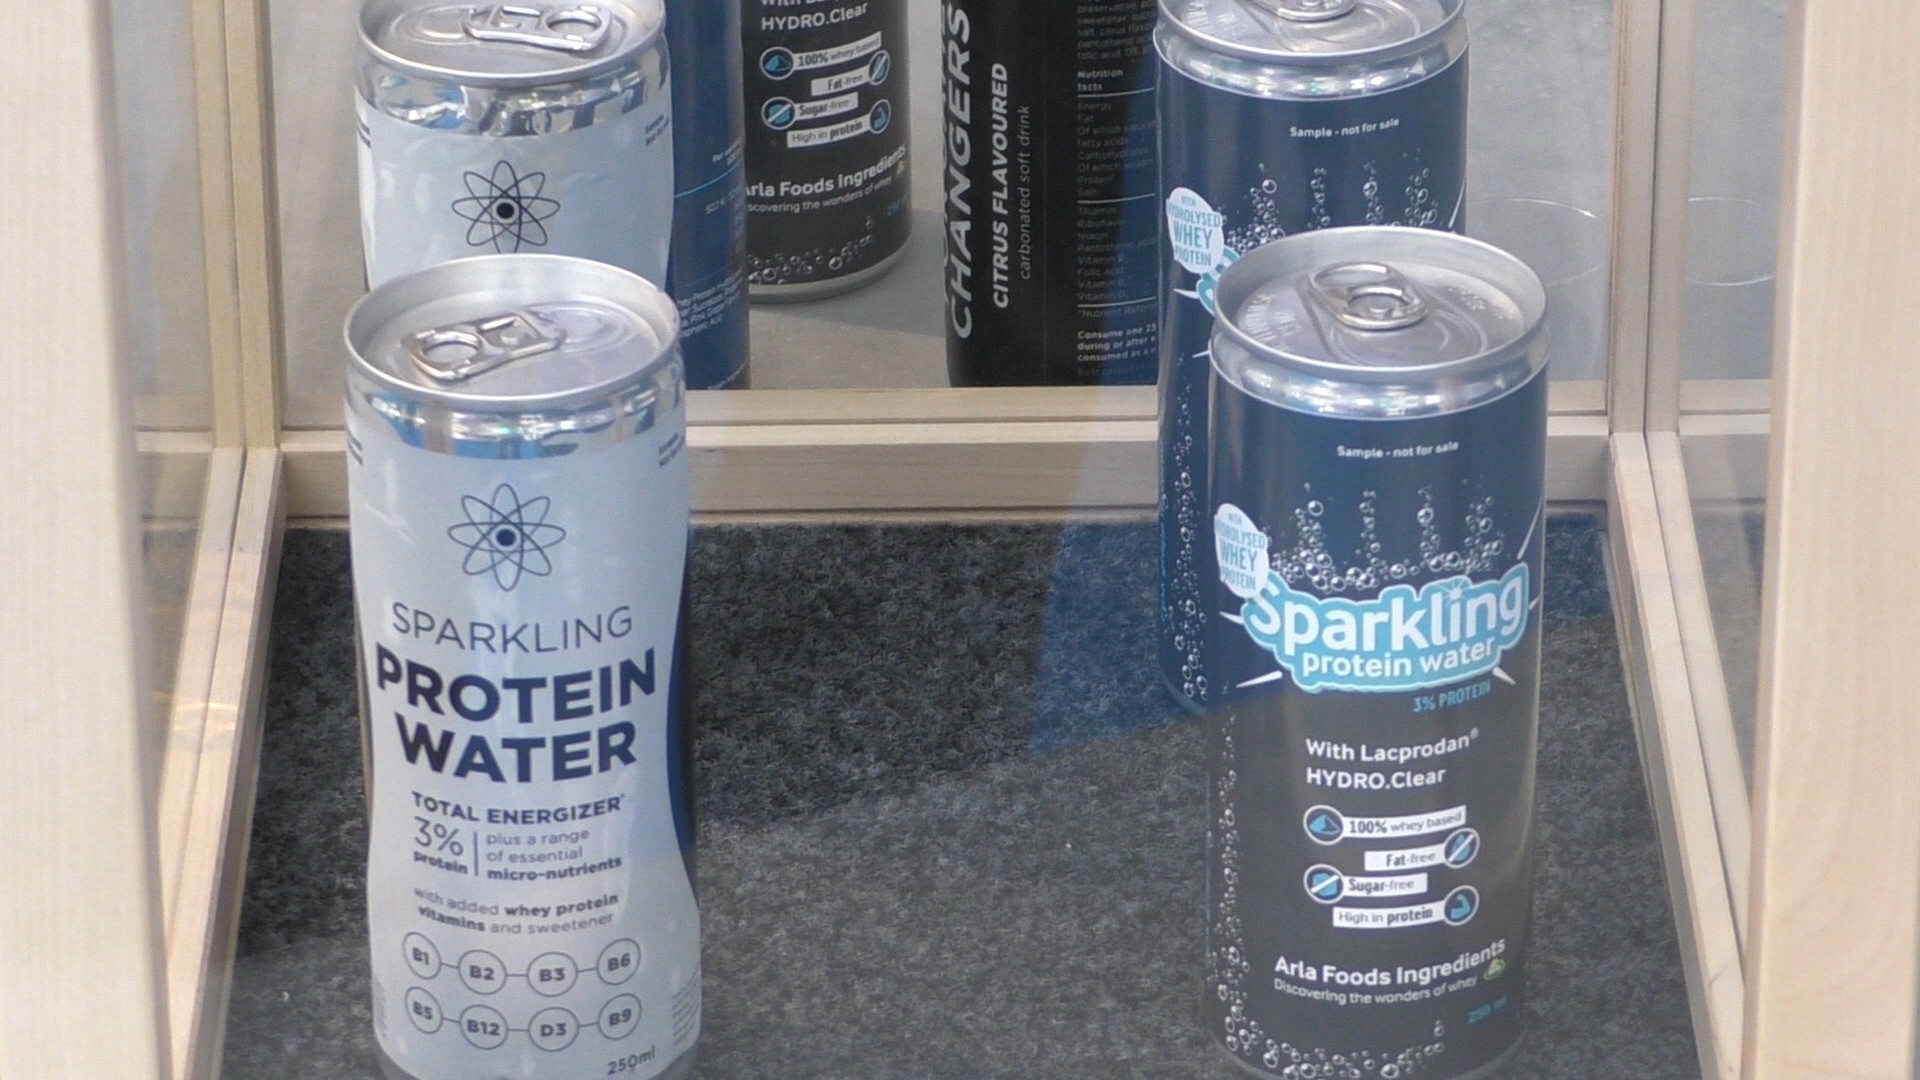 Interview: Arla discusses its 'whey protein soda' concept